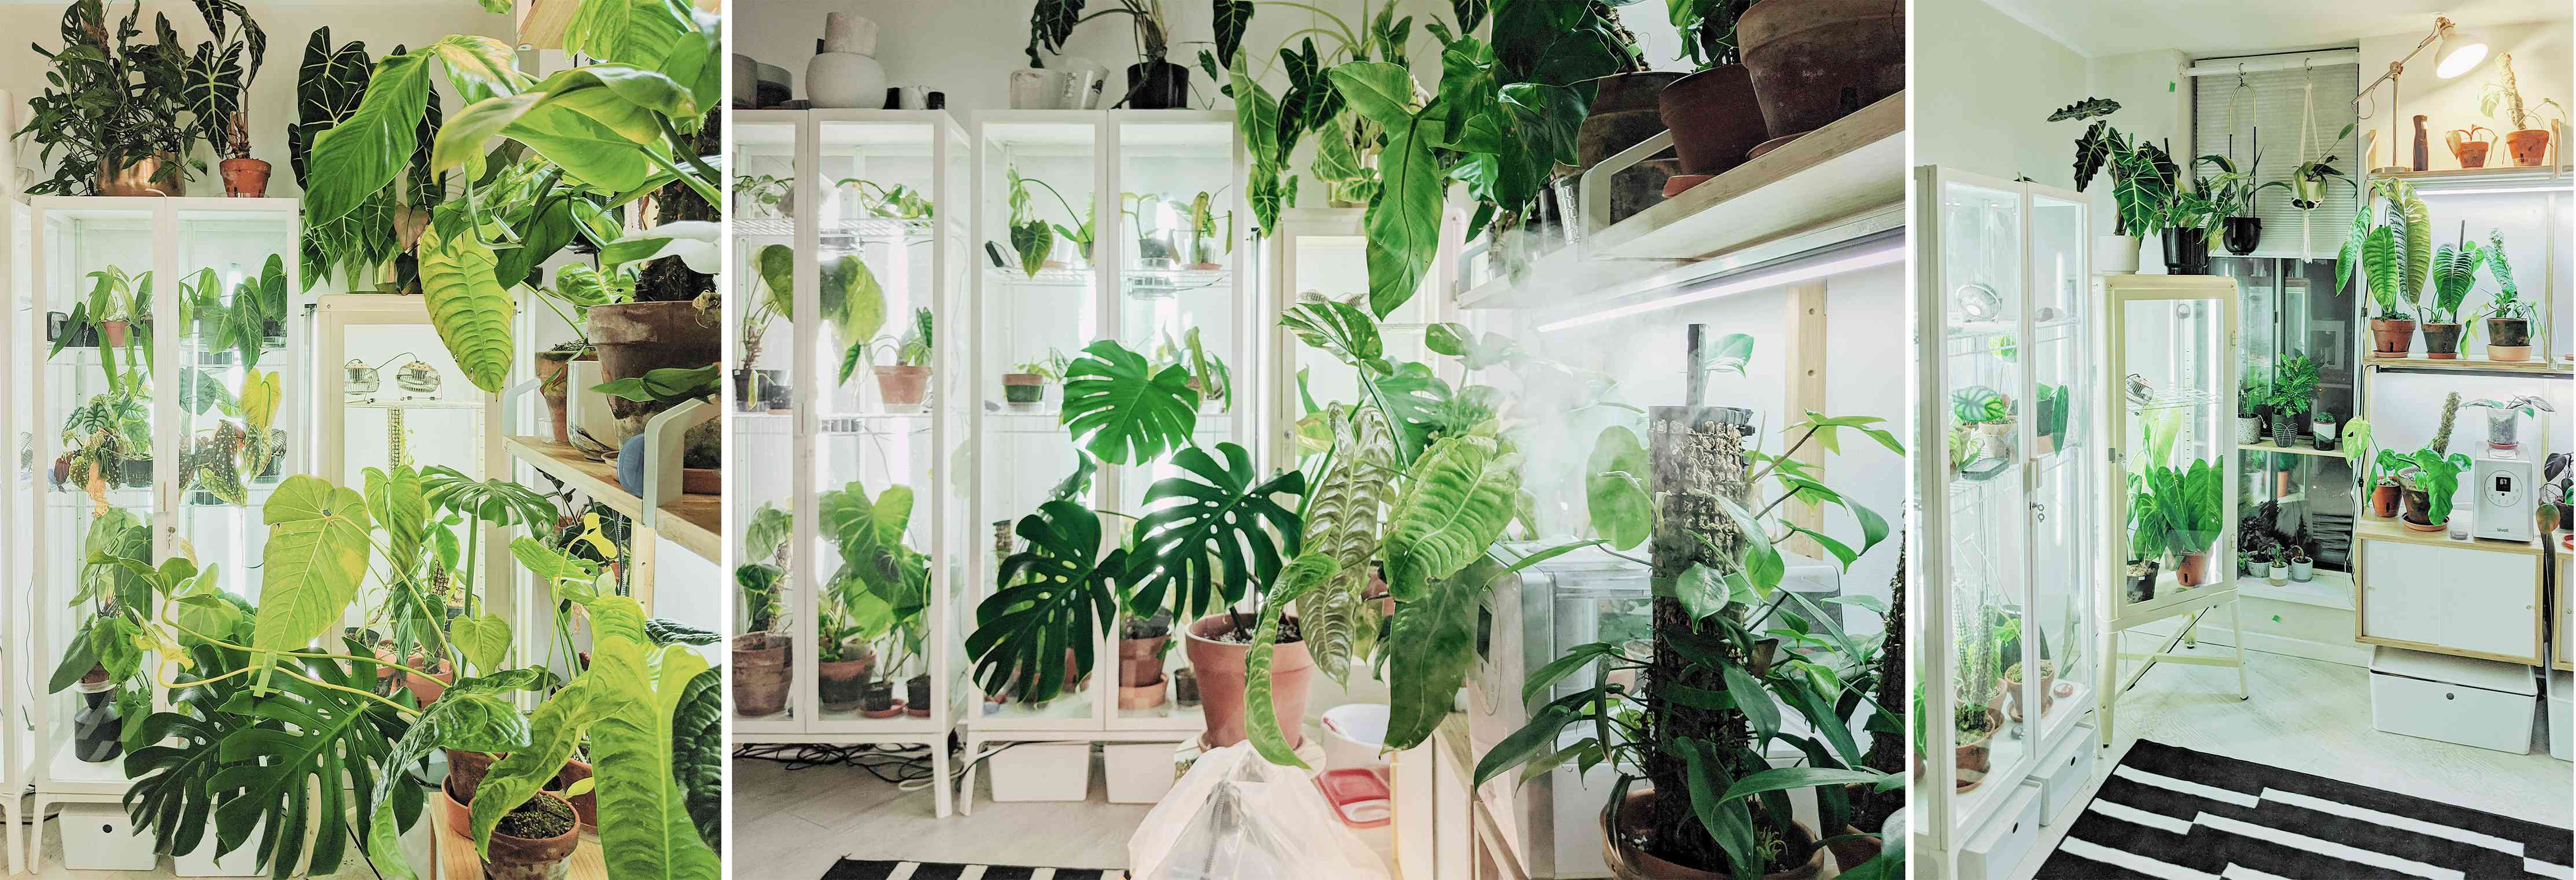 Vinny of @Vinny.aroids created three different greenhouses from IKEA cabinets for his huge aroid plant collection